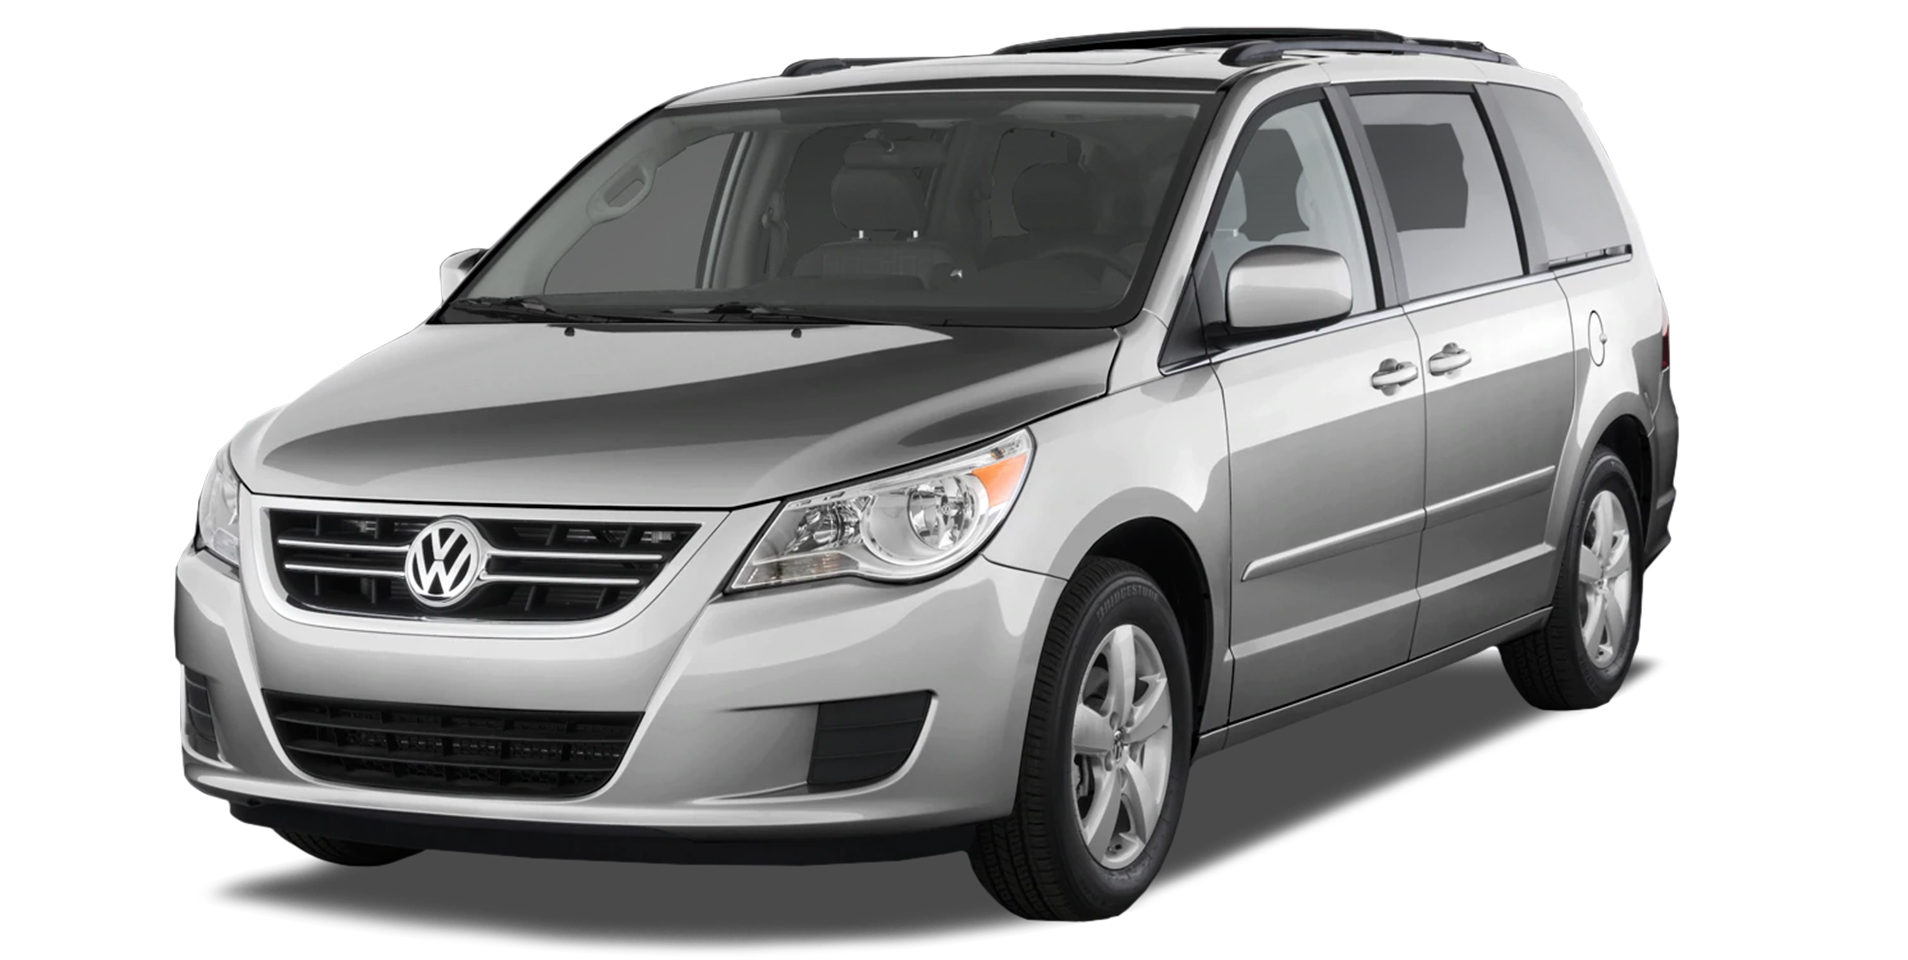 TIPMs and Repairs for 2011 VW Routan Minivans